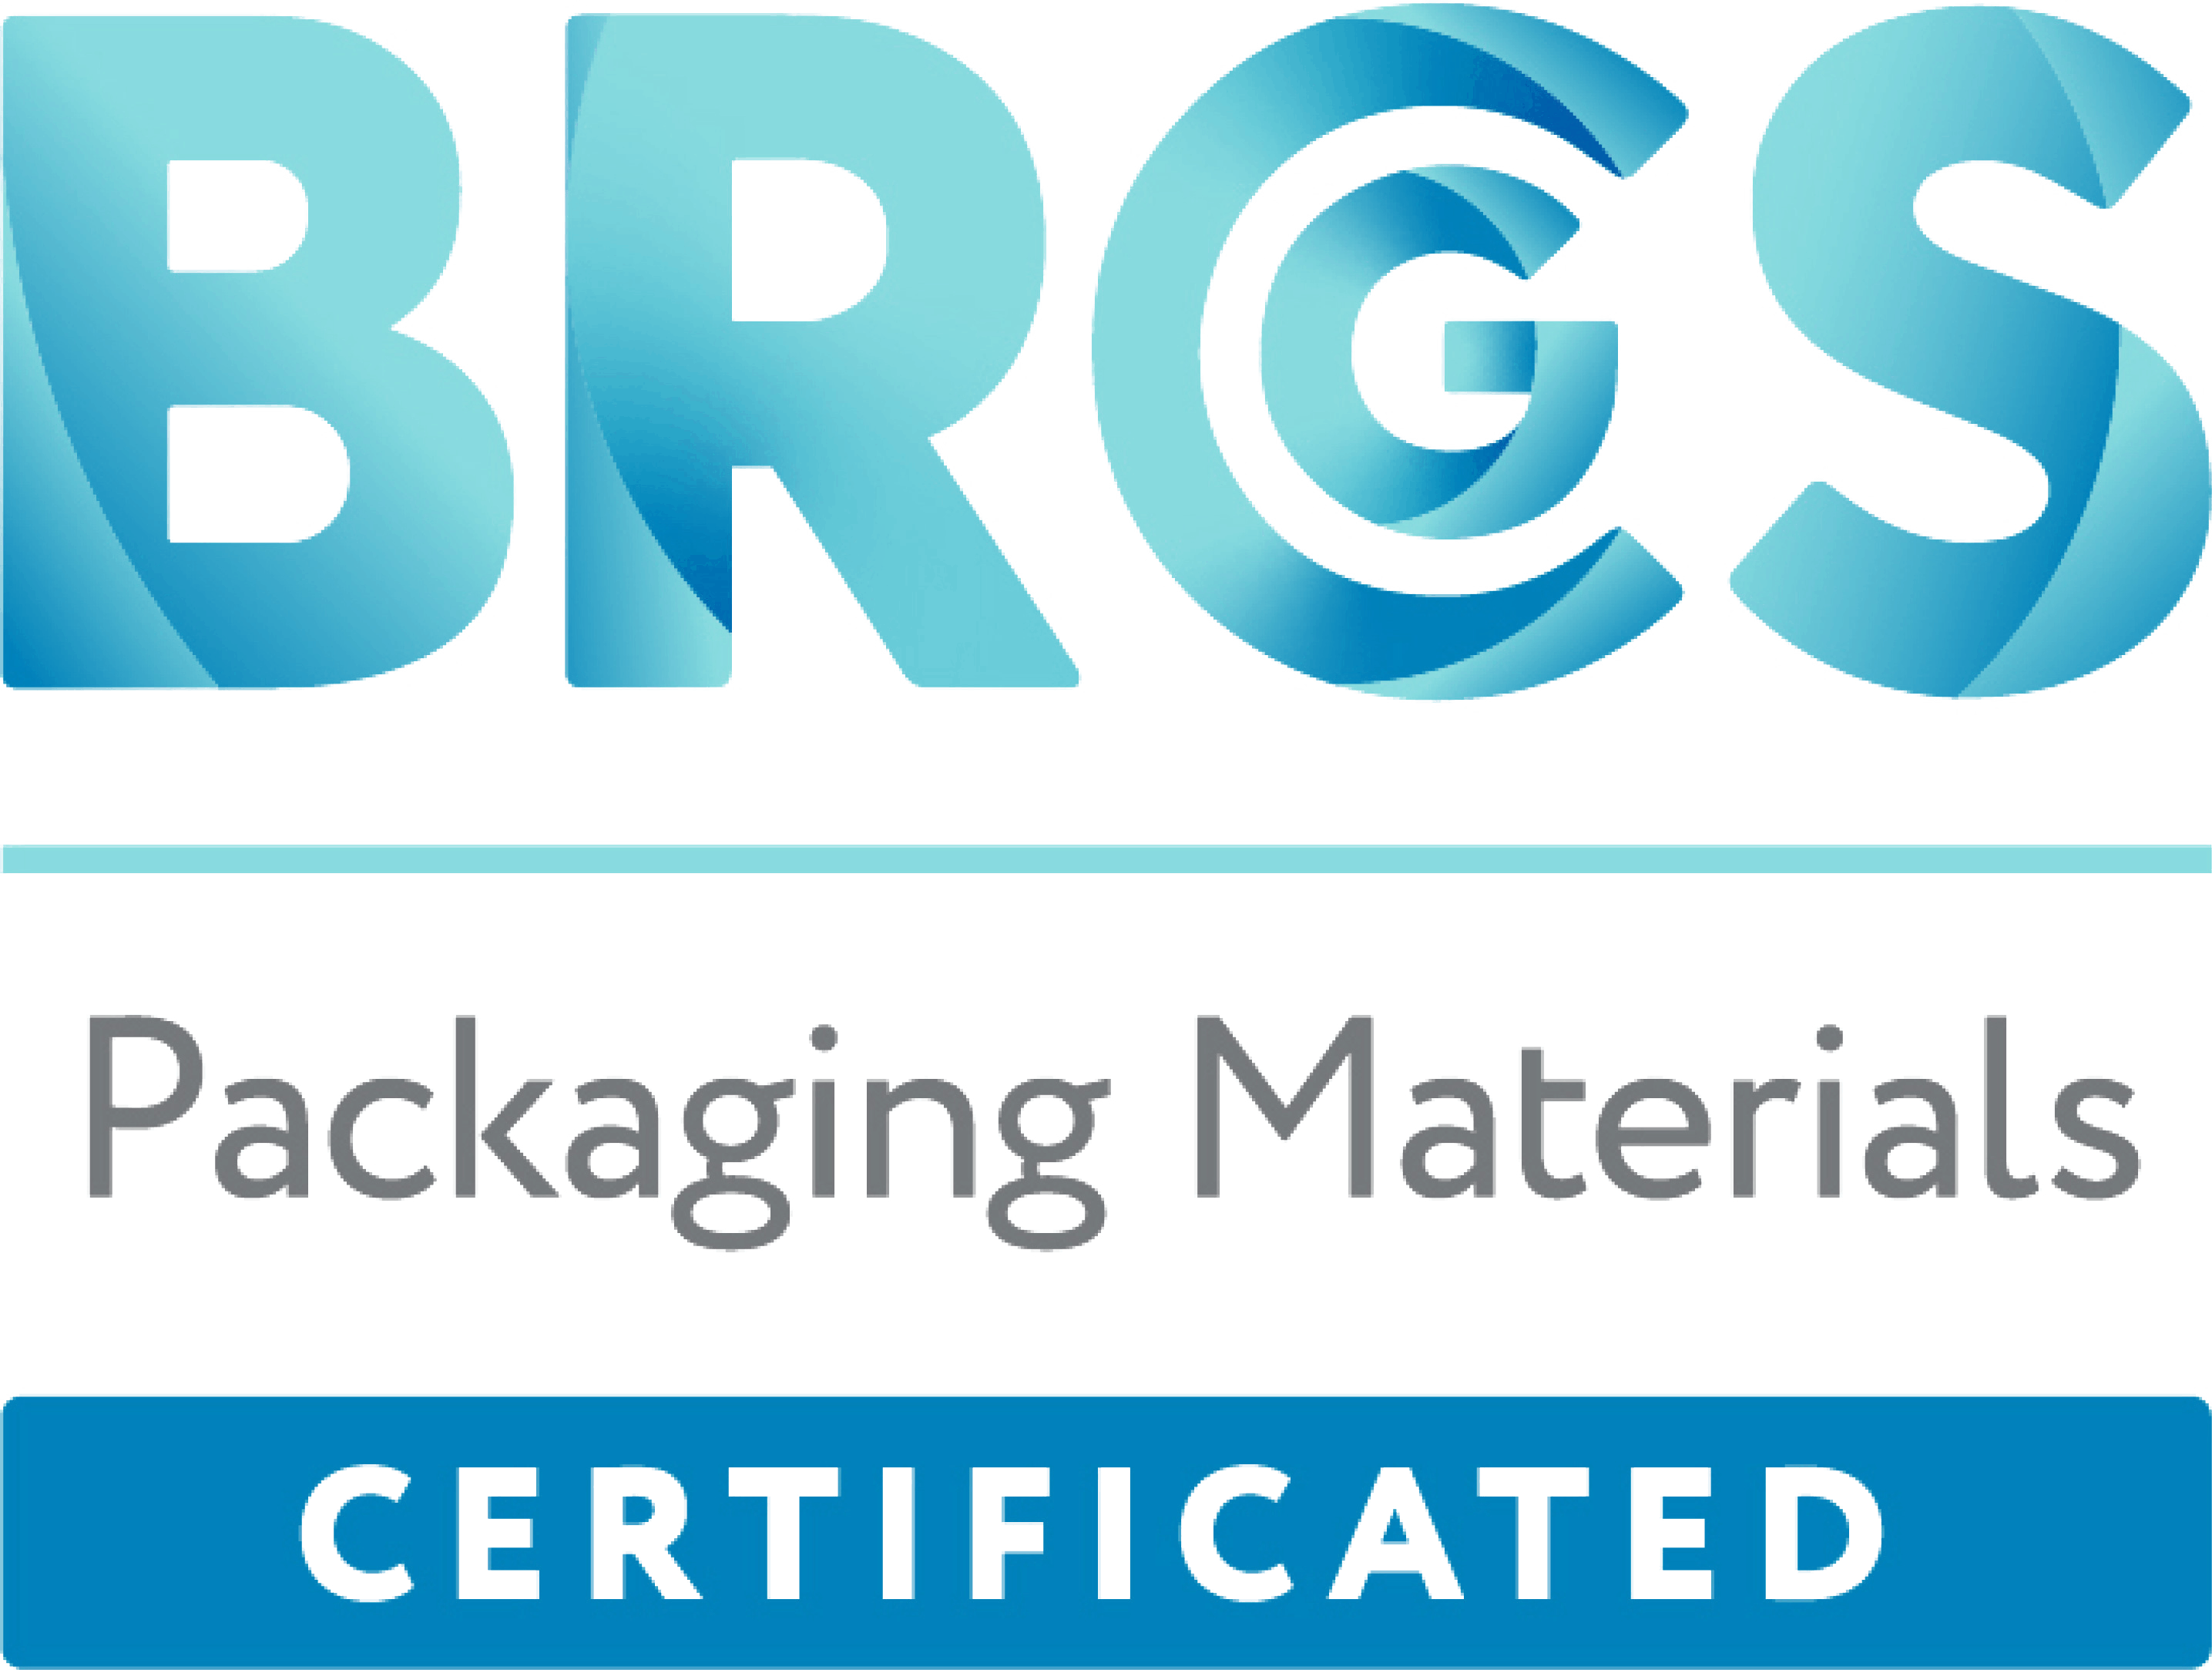 BRCGS Packaging Materials Certificated